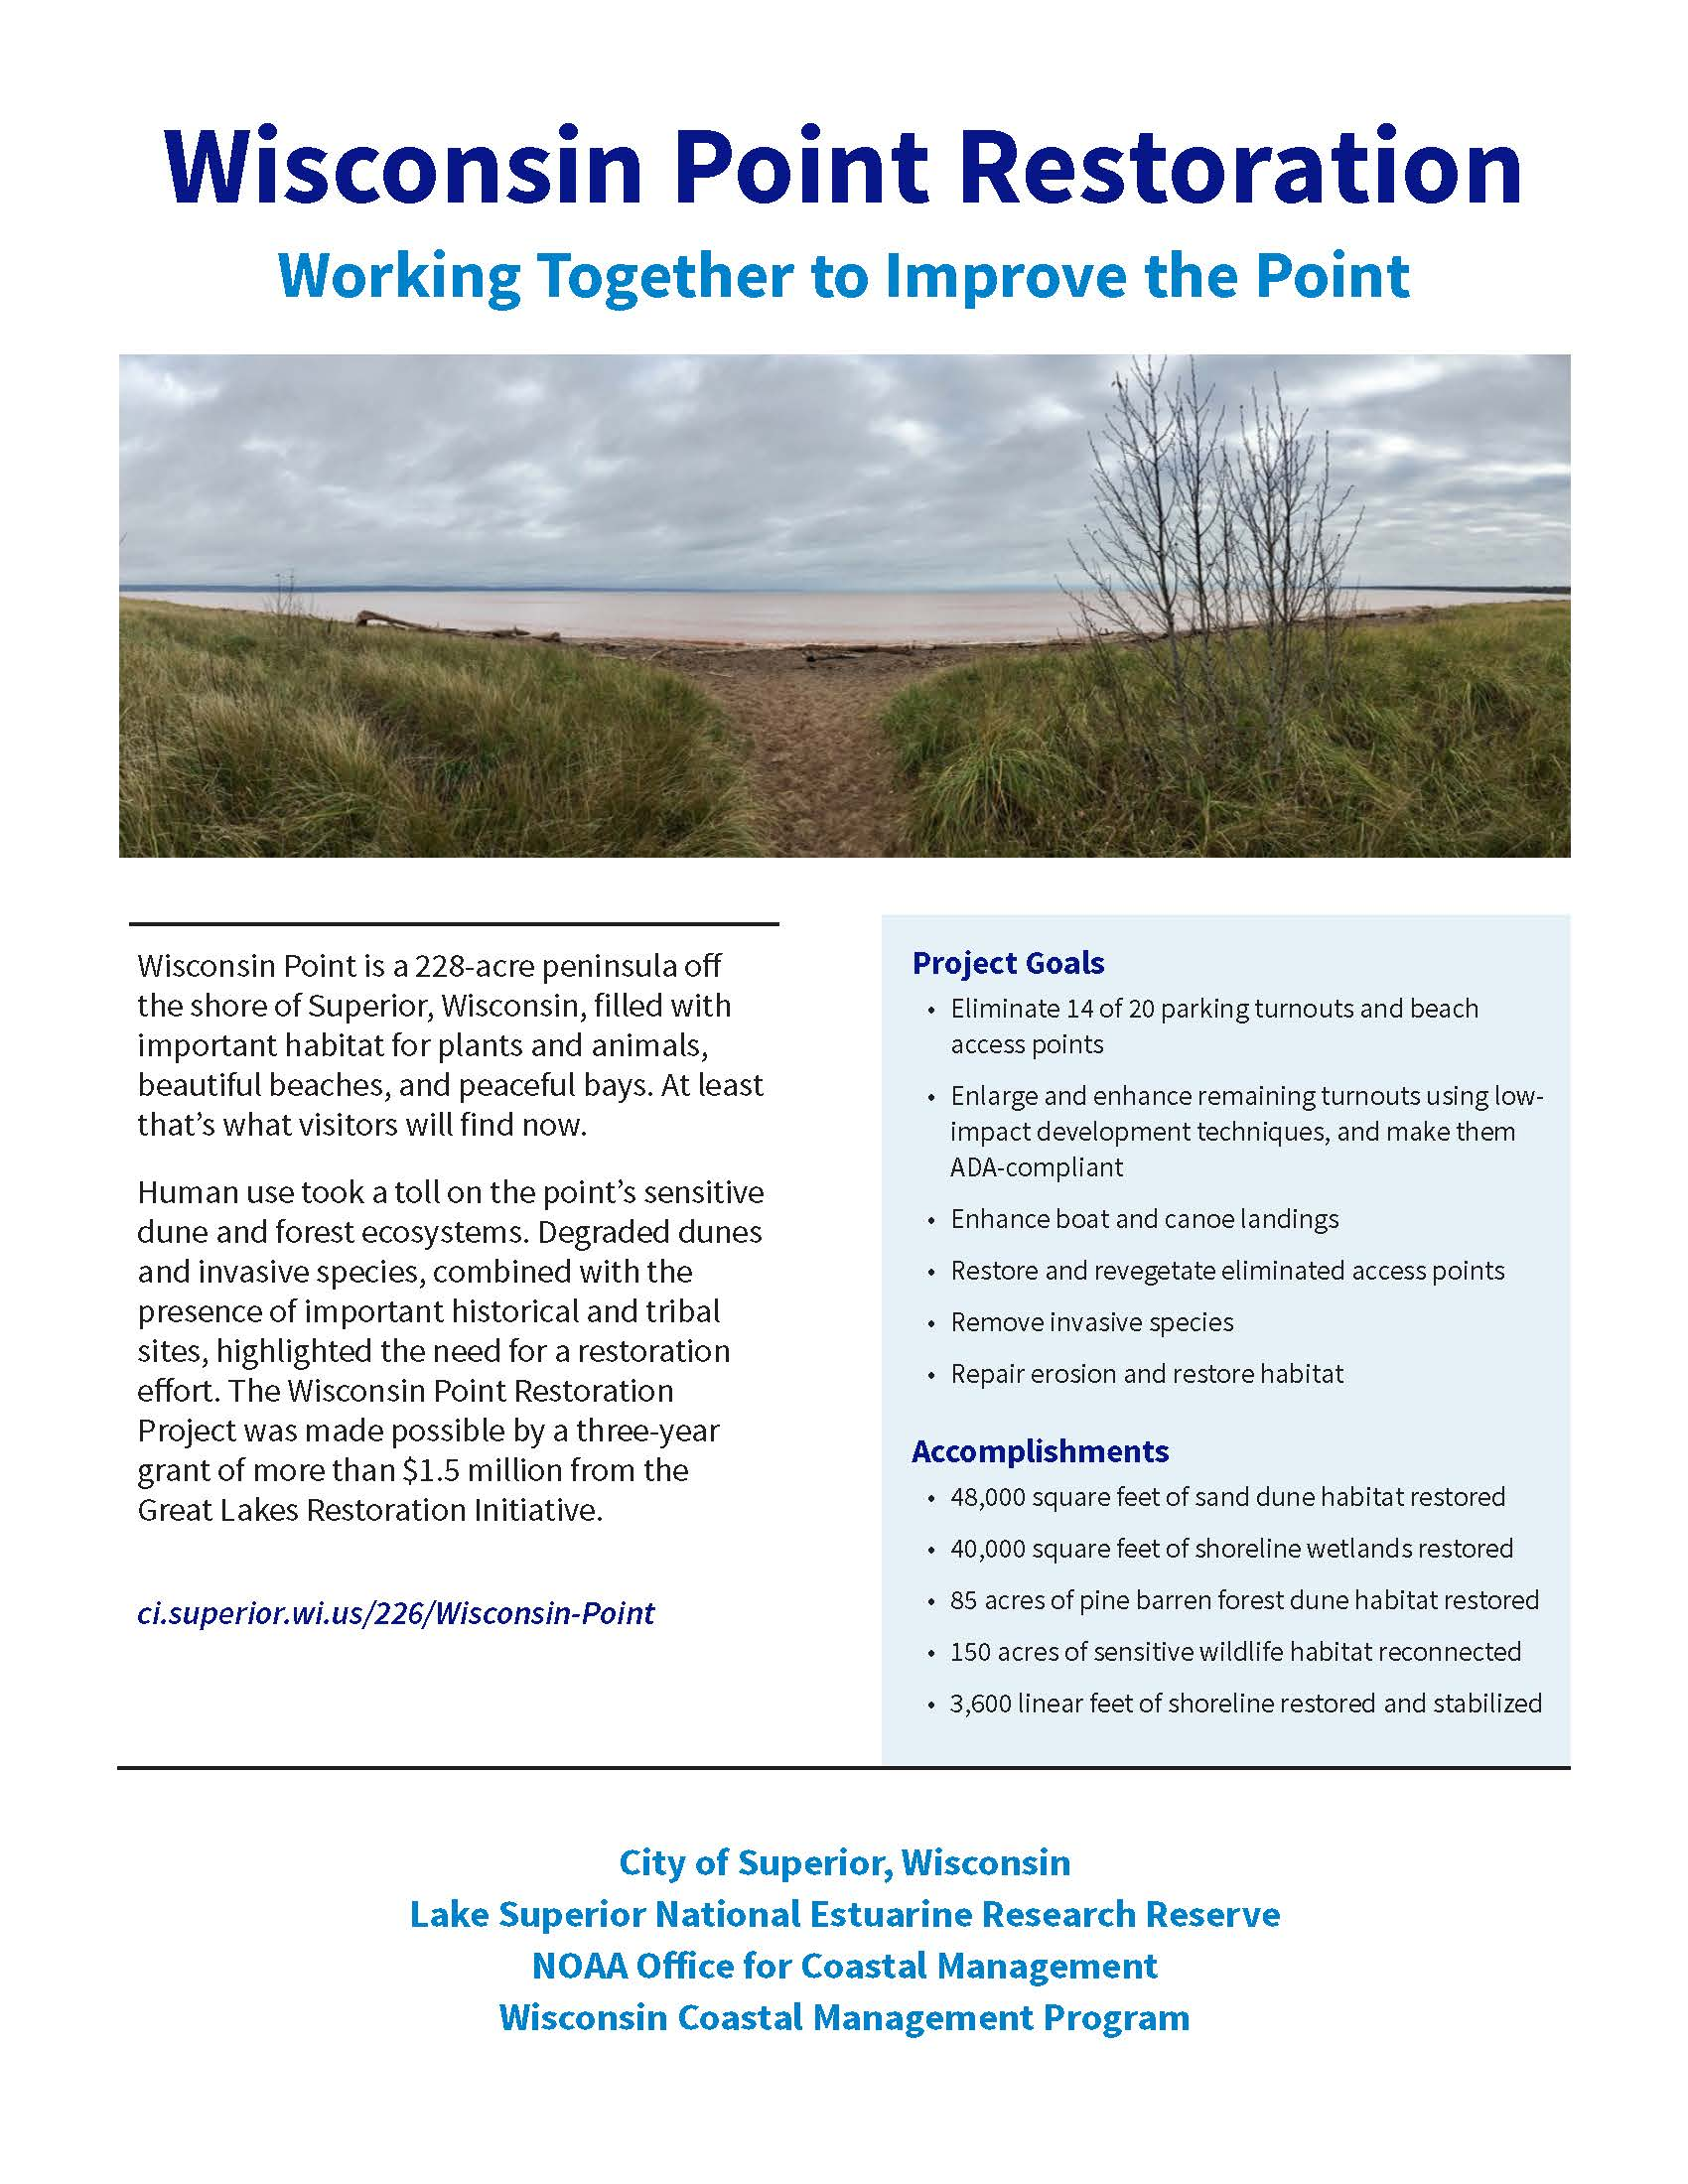 Information sheet describing the work completed as part of the Wisconsin Point Restoration and acces